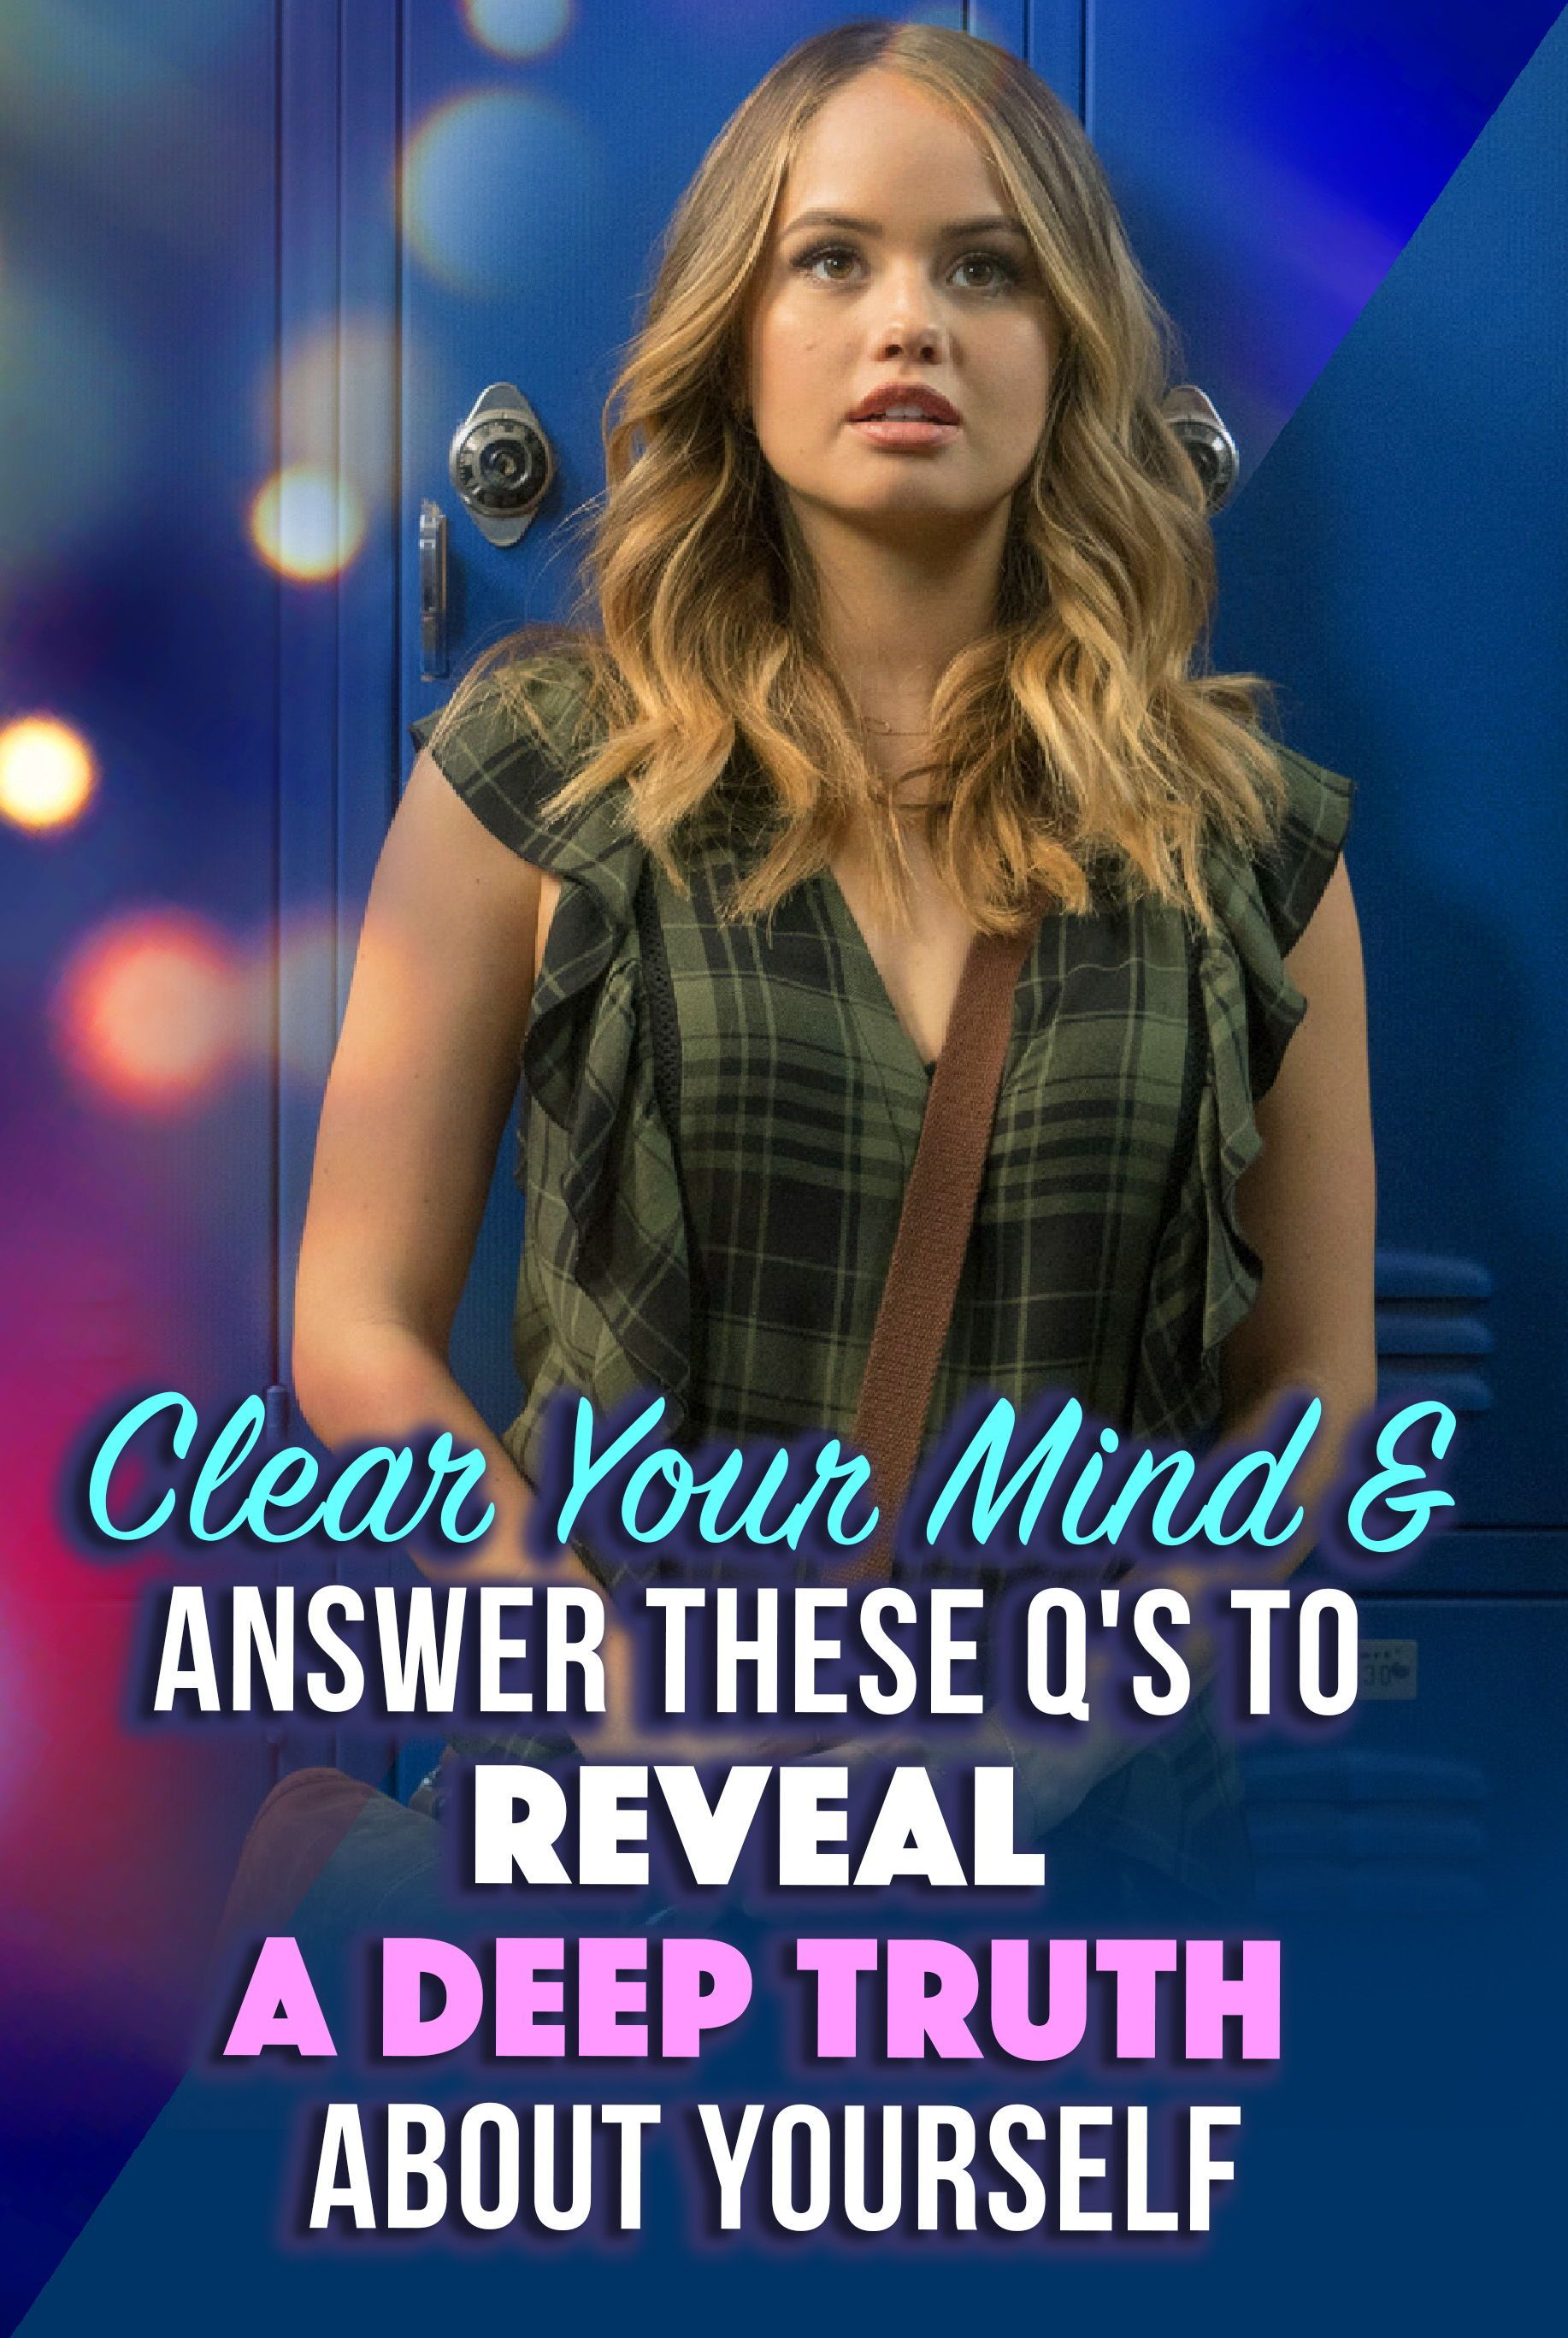 Clear Your Mind & Answer These Q's To Reveal A Deep Truth